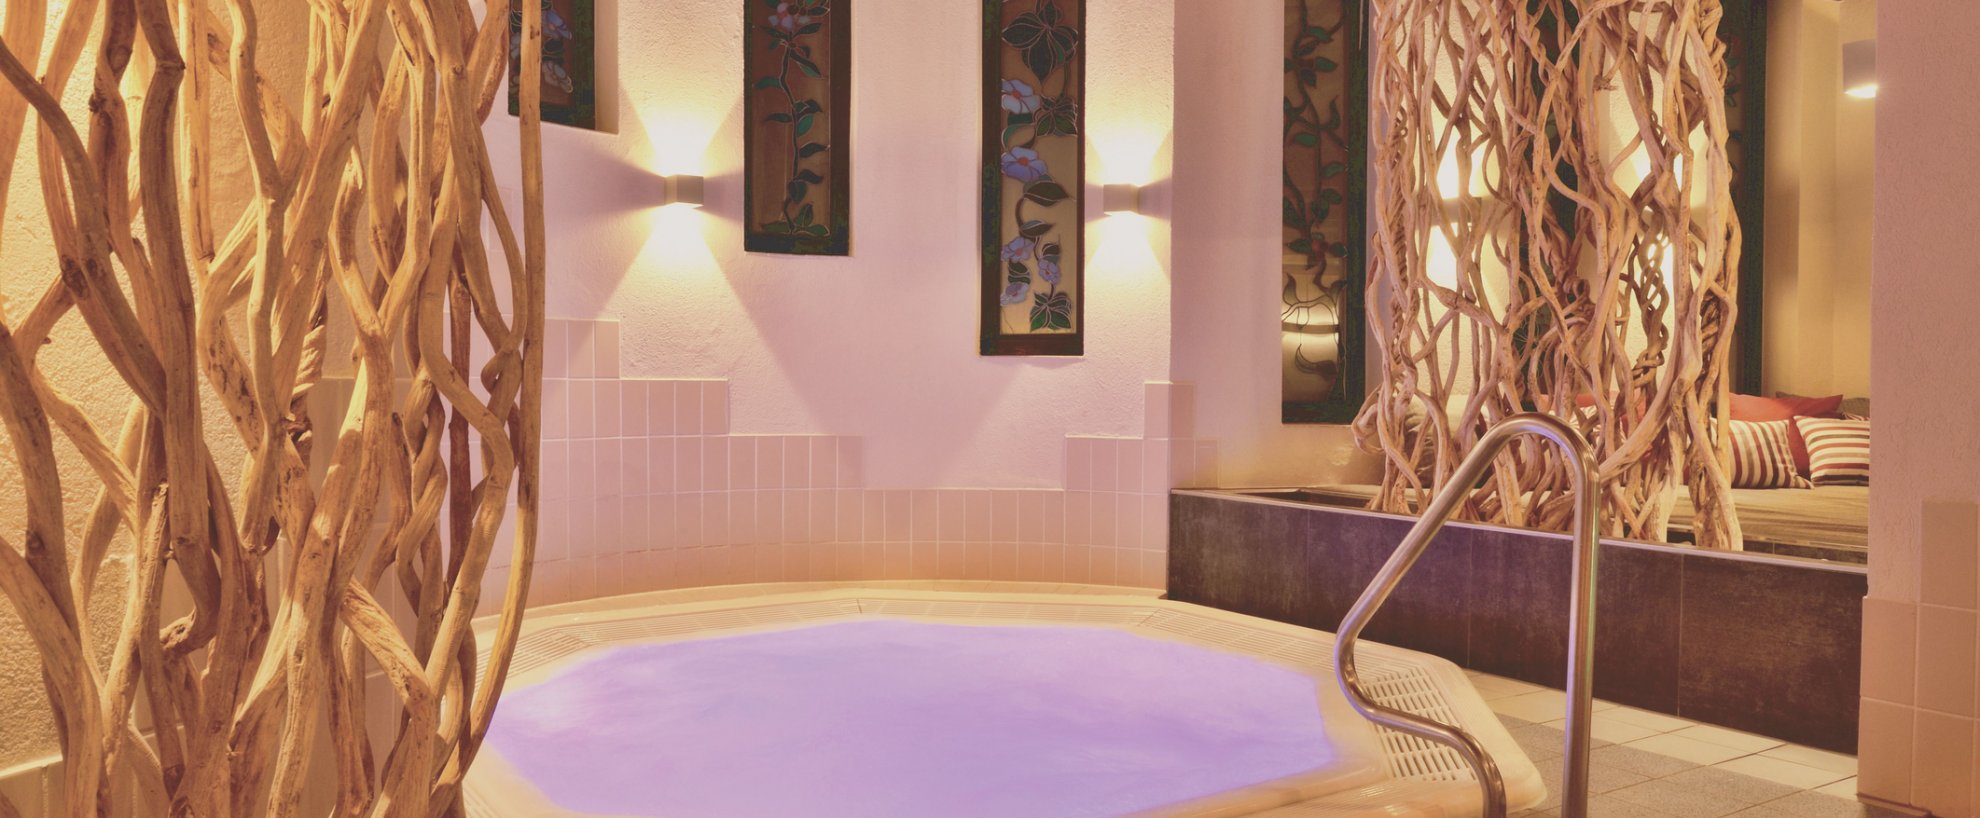 Deutschland Bad Bocklet Hotel Kunzmanns Wellness Whirlpool